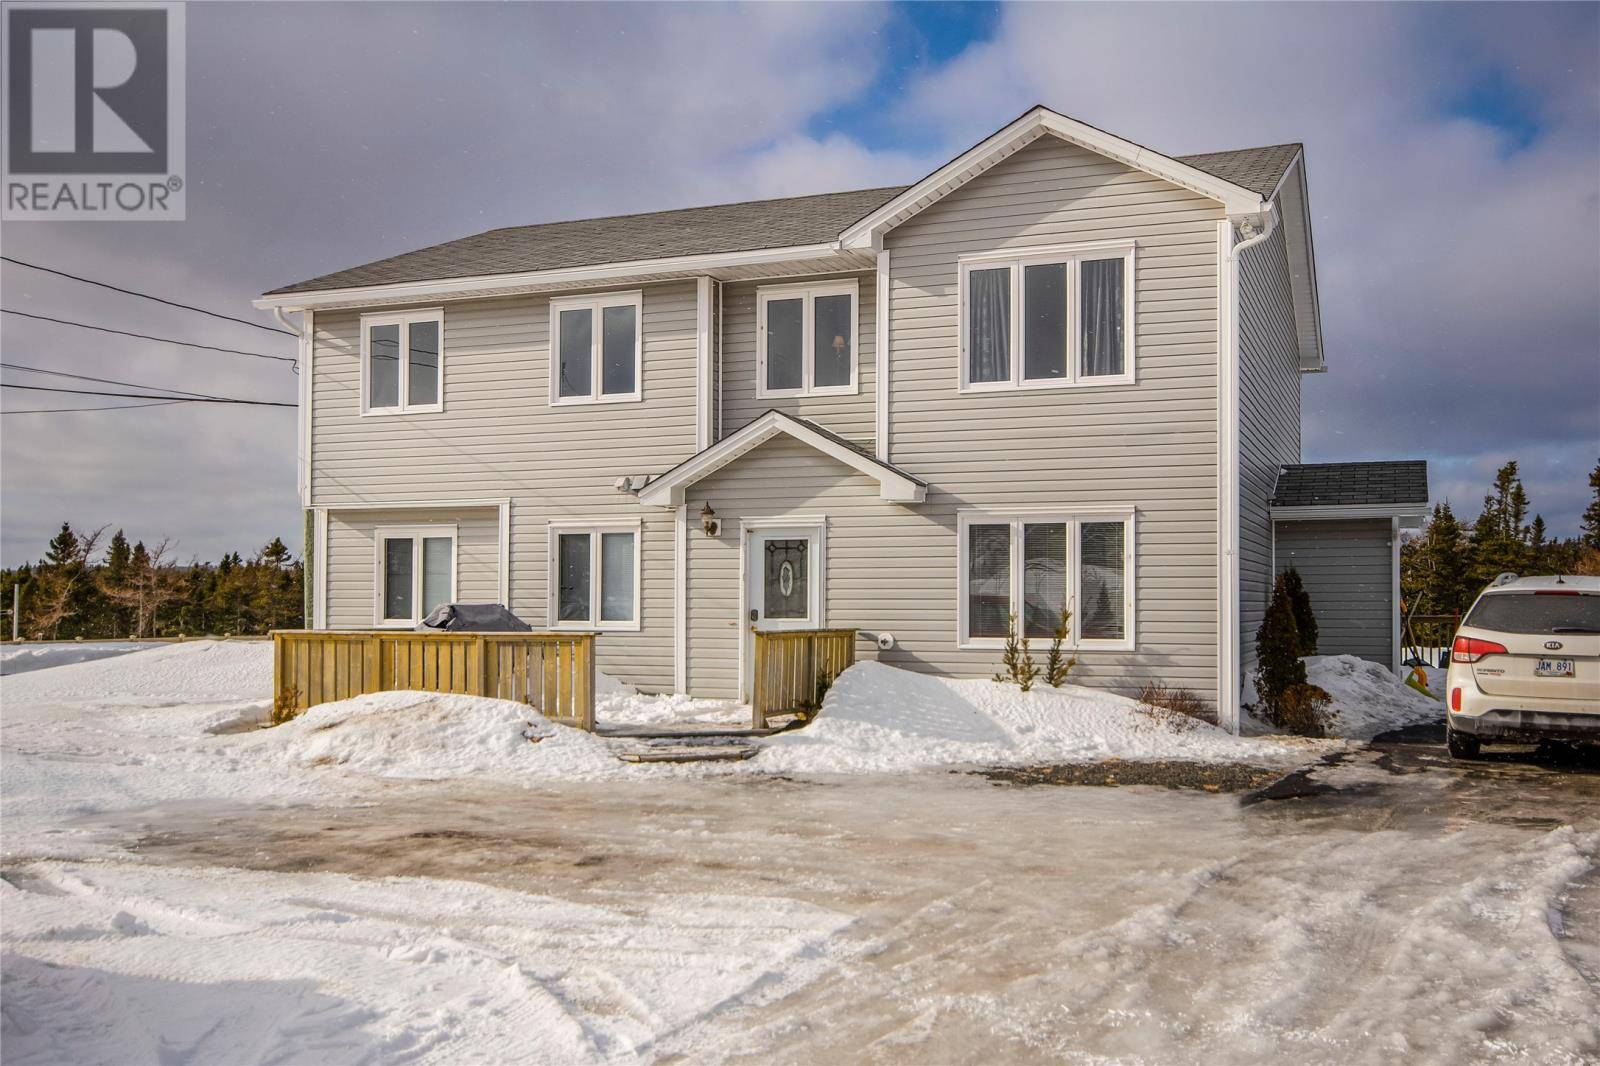 House for sale at 838 Indian Meal Line Portugal Cove Newfoundland - MLS: 1211744